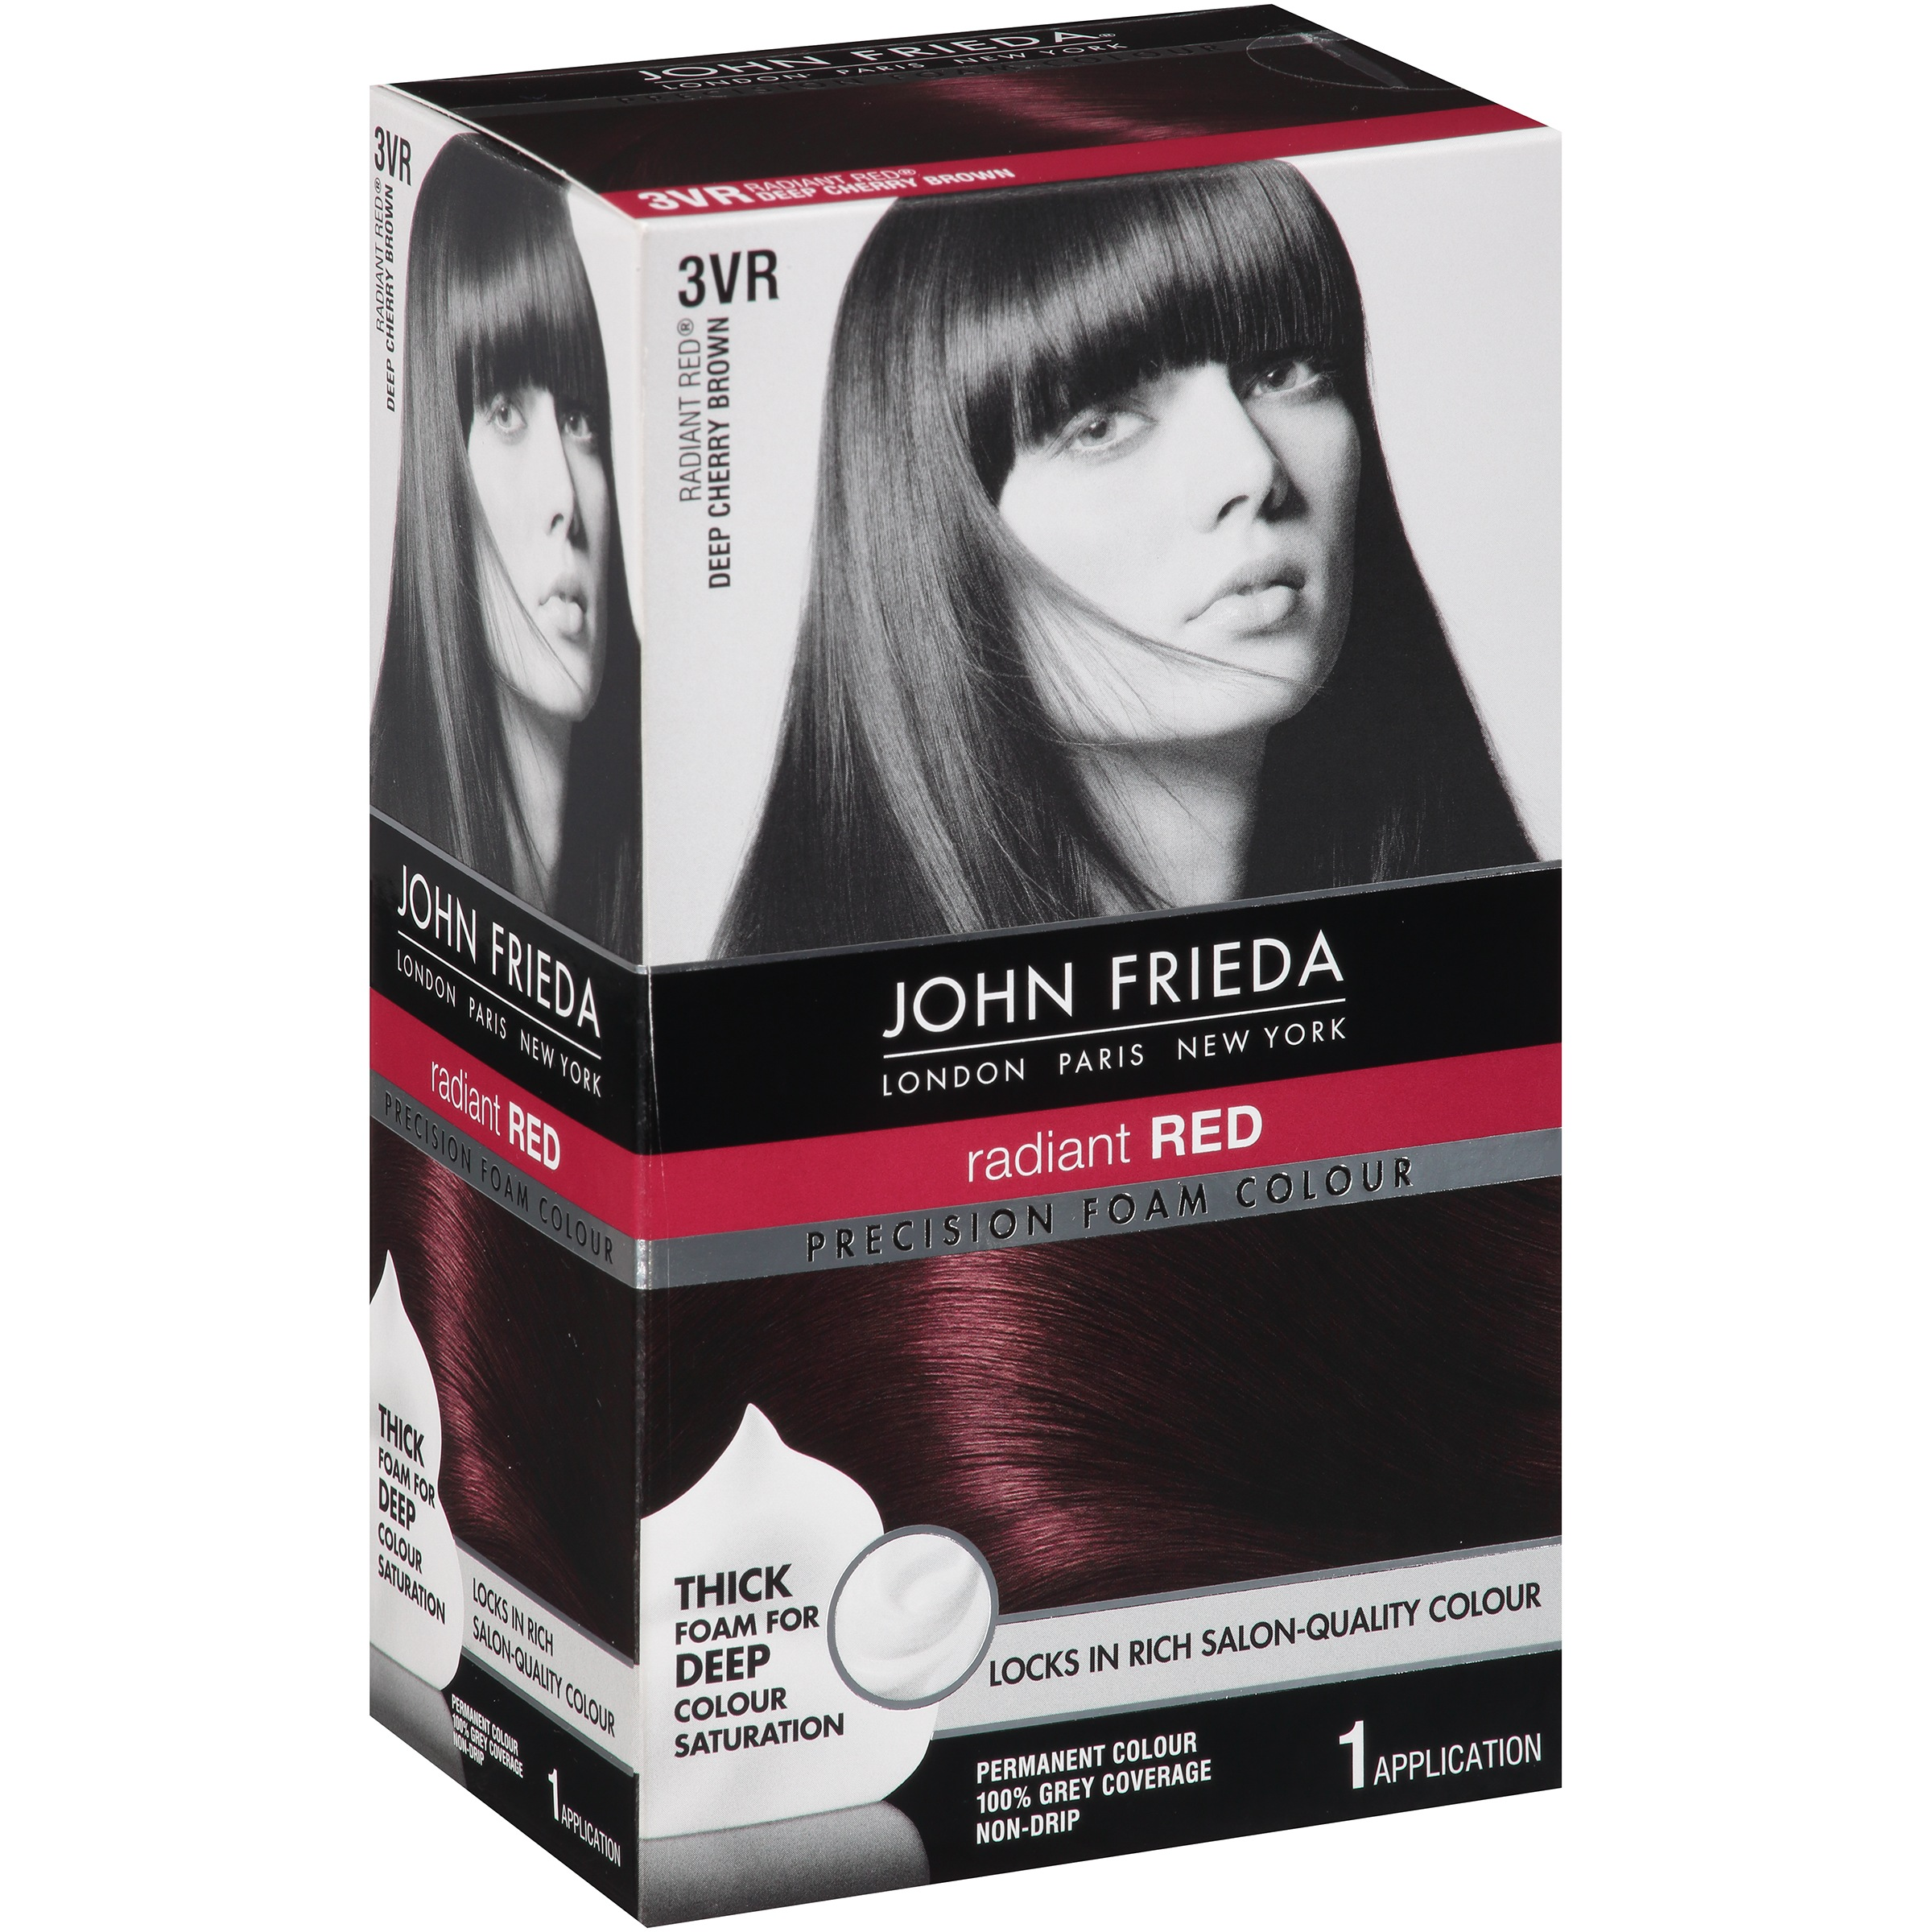 John Frieda Permanent Colour Radiant Red Deep Cherry Brown 3vr 10